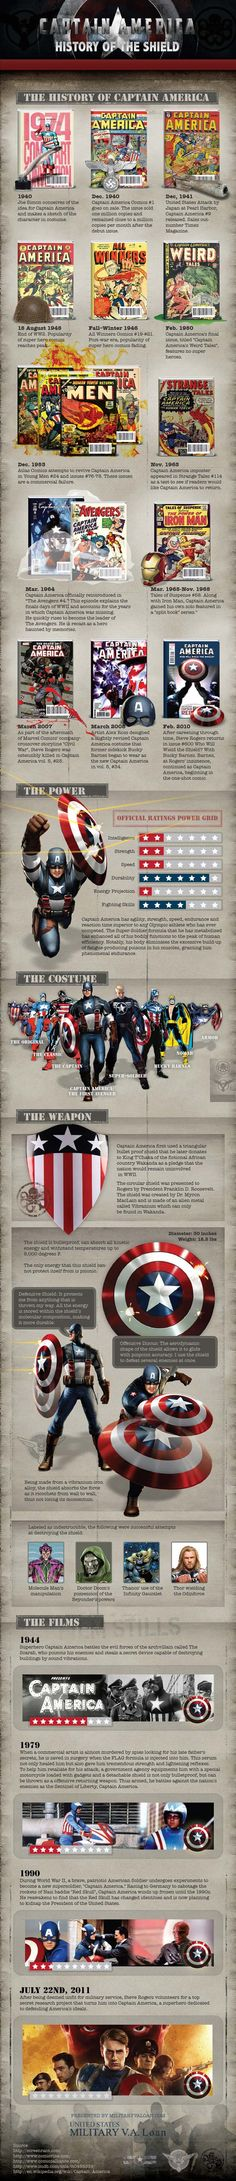 Captain America - The History of the Shield